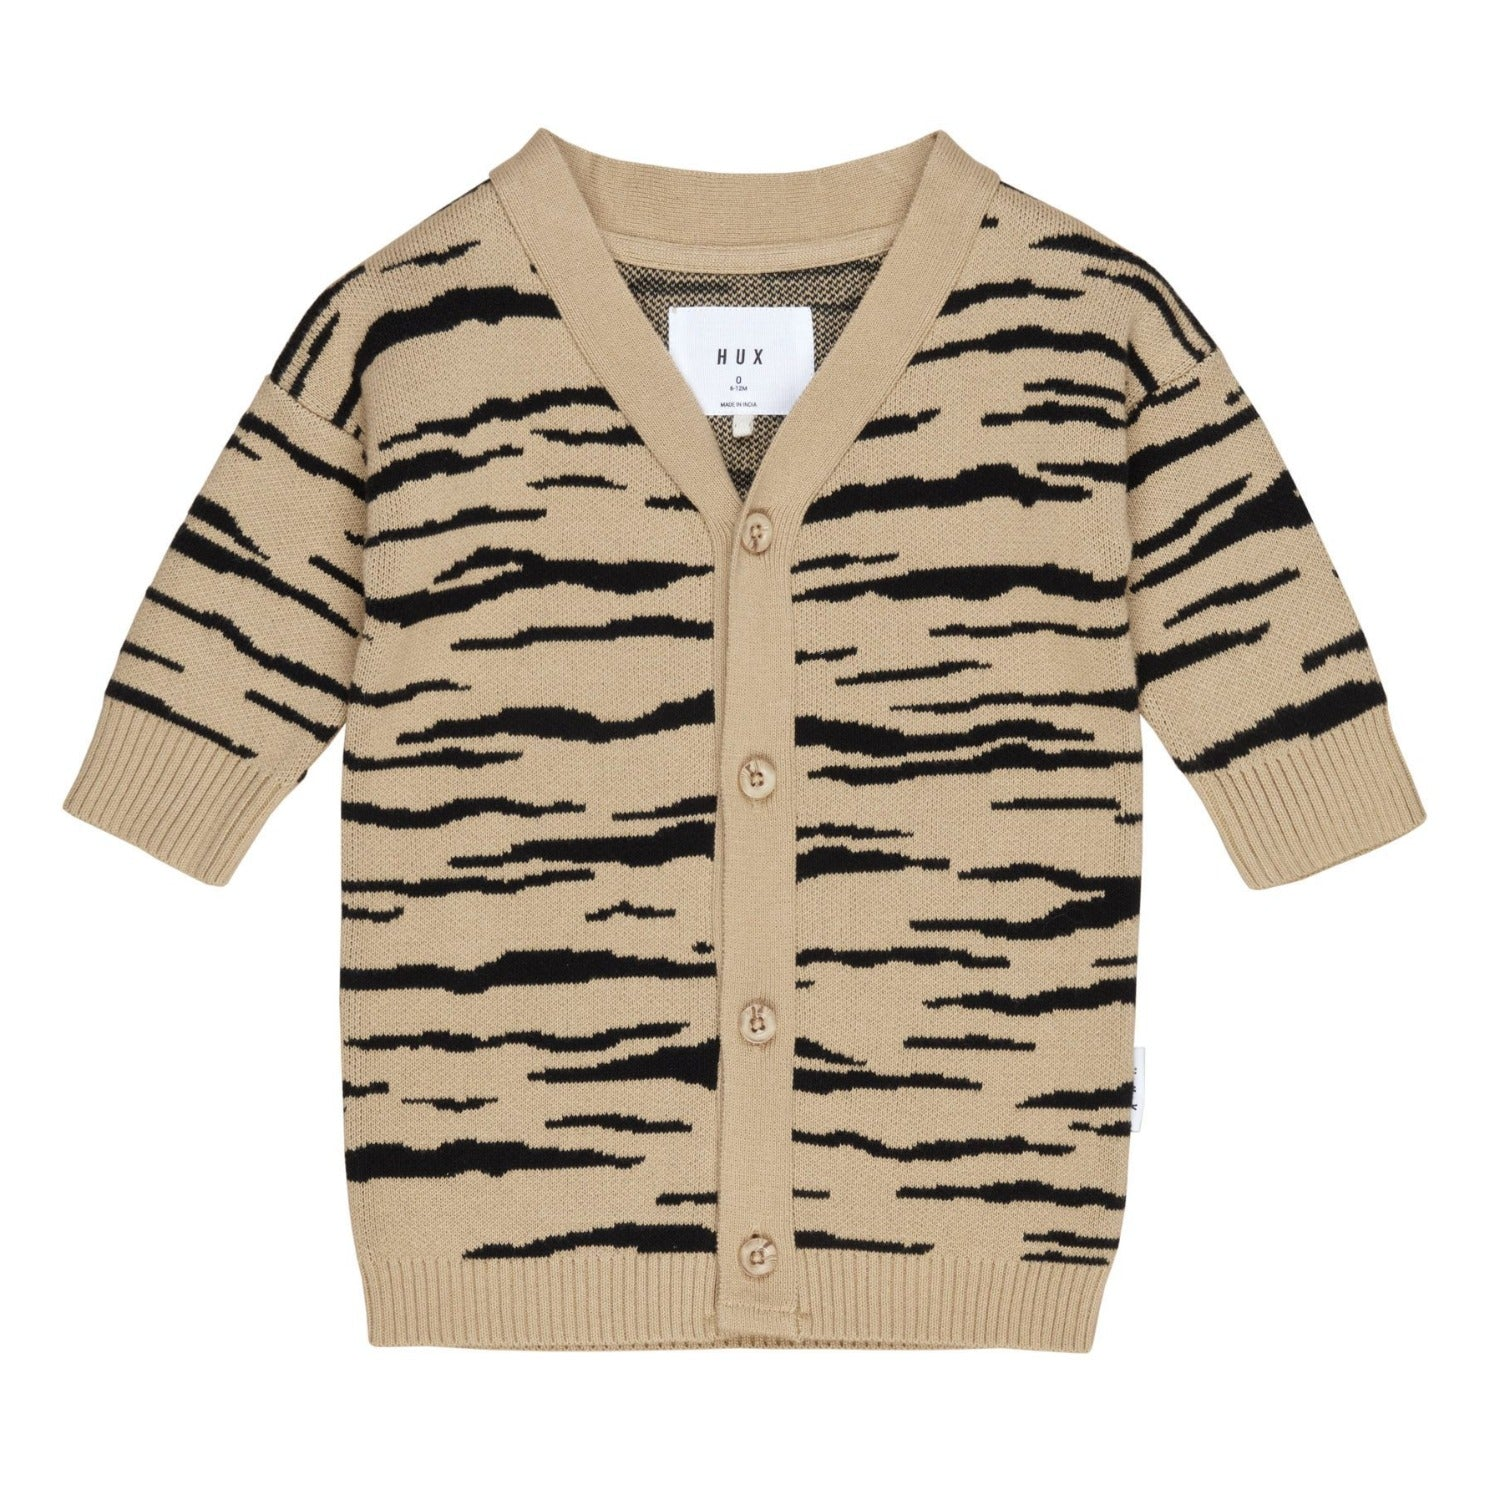 Huxbaby wildcat knit cardi, honey